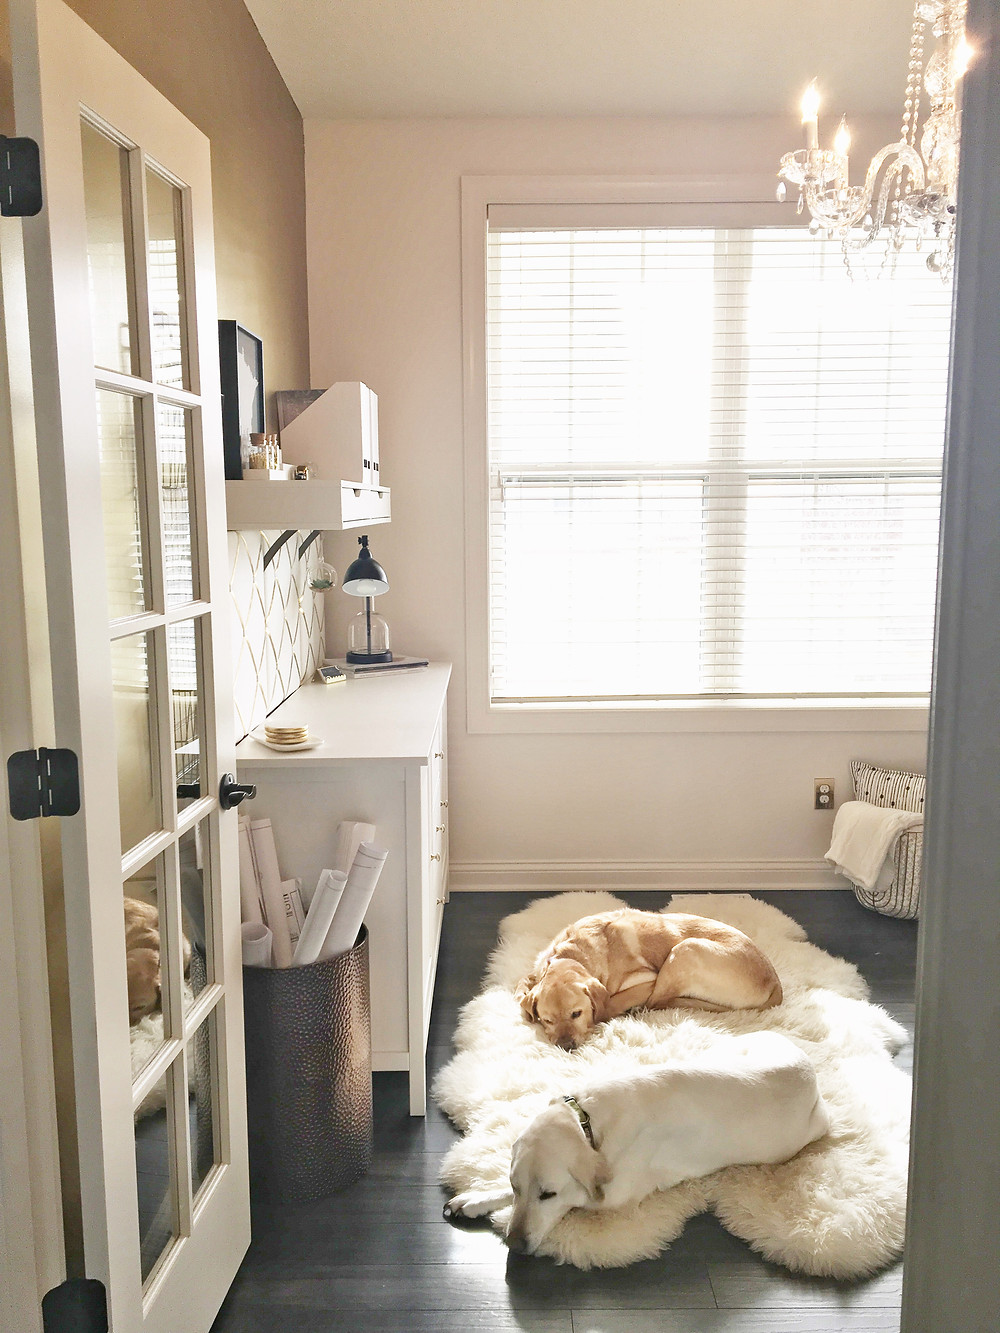 Puppies sleeping in the EH Design Interior Design Office with SW Moderate walls and accent gold wall